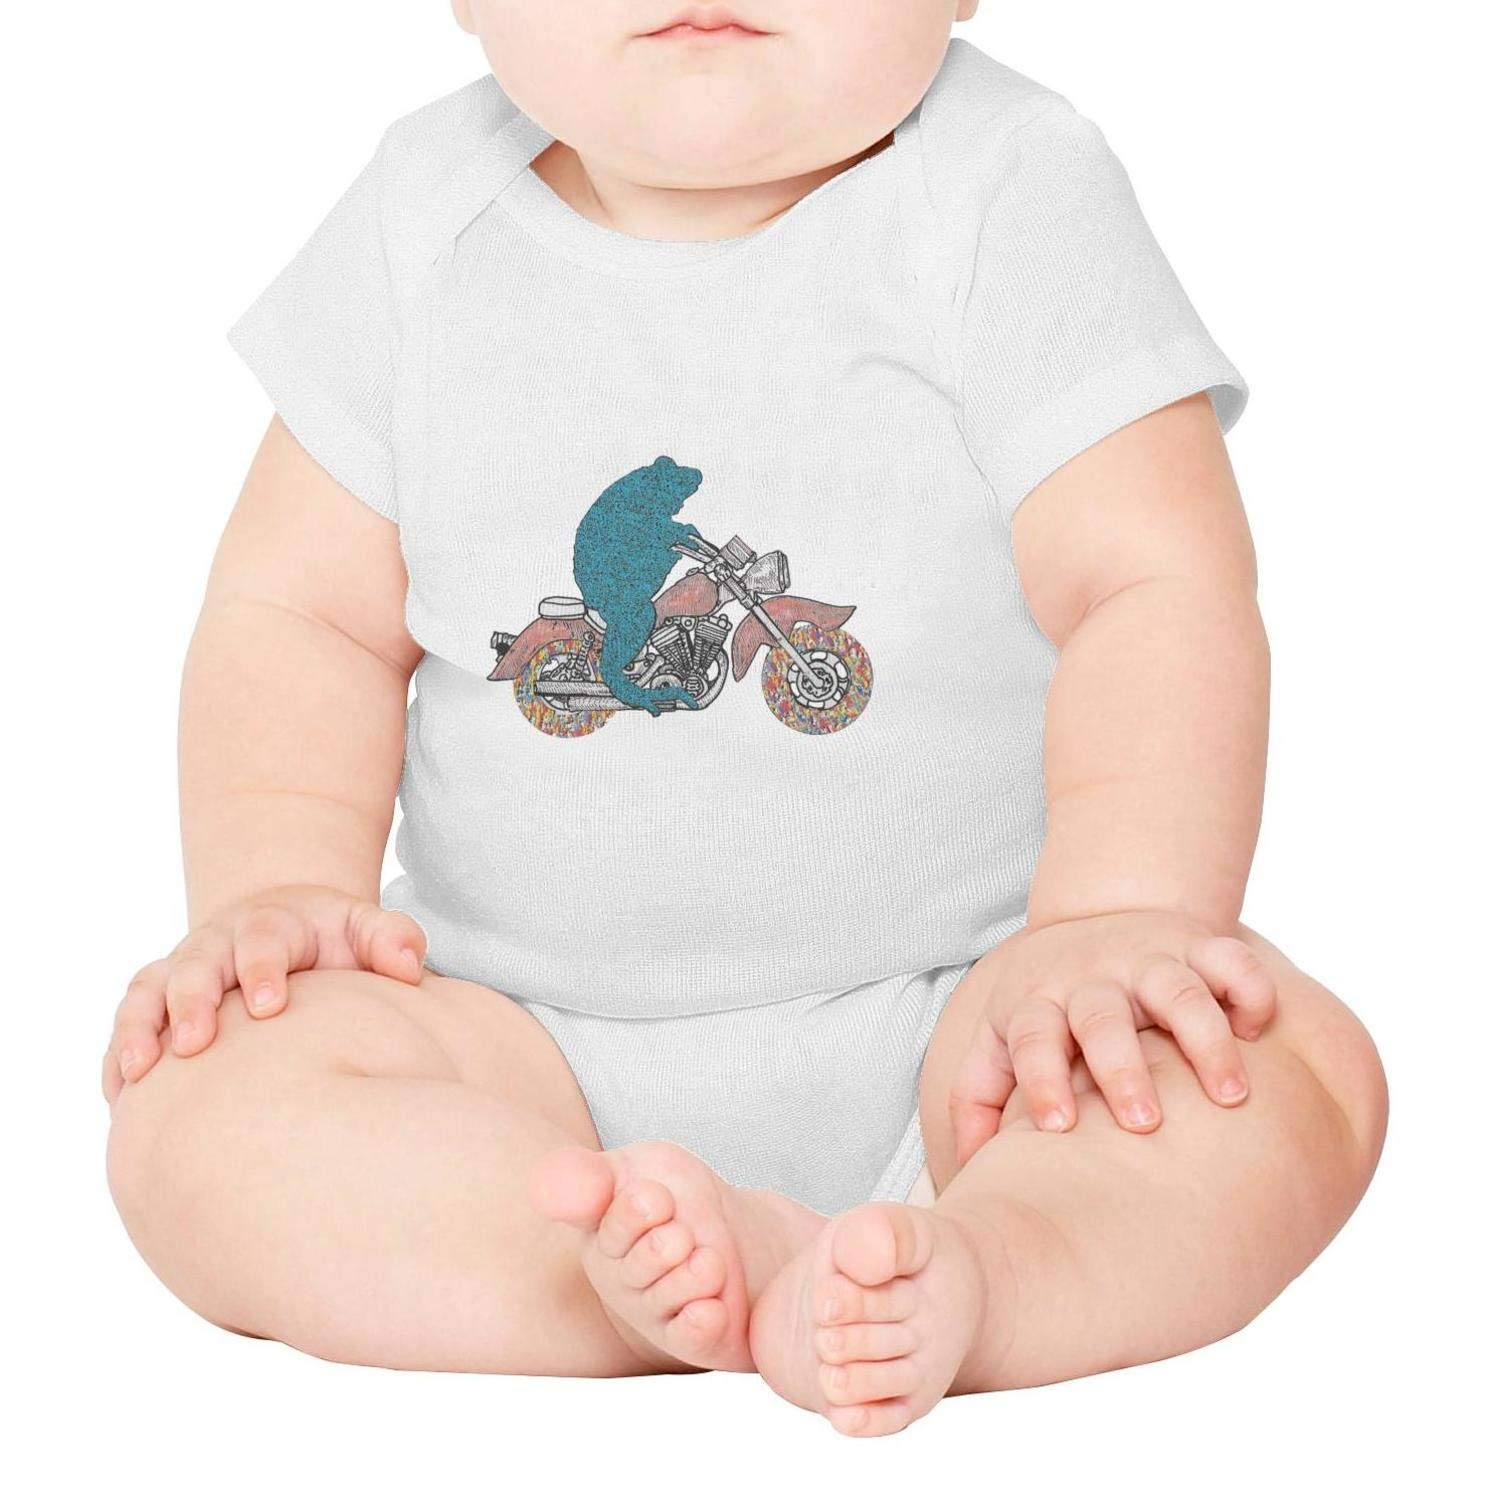 California Art Los Angeles Sunny Beach Short Sleeve Natural Organic Baby Onesies Romper Cotton 100/% for Infant Boys Girls